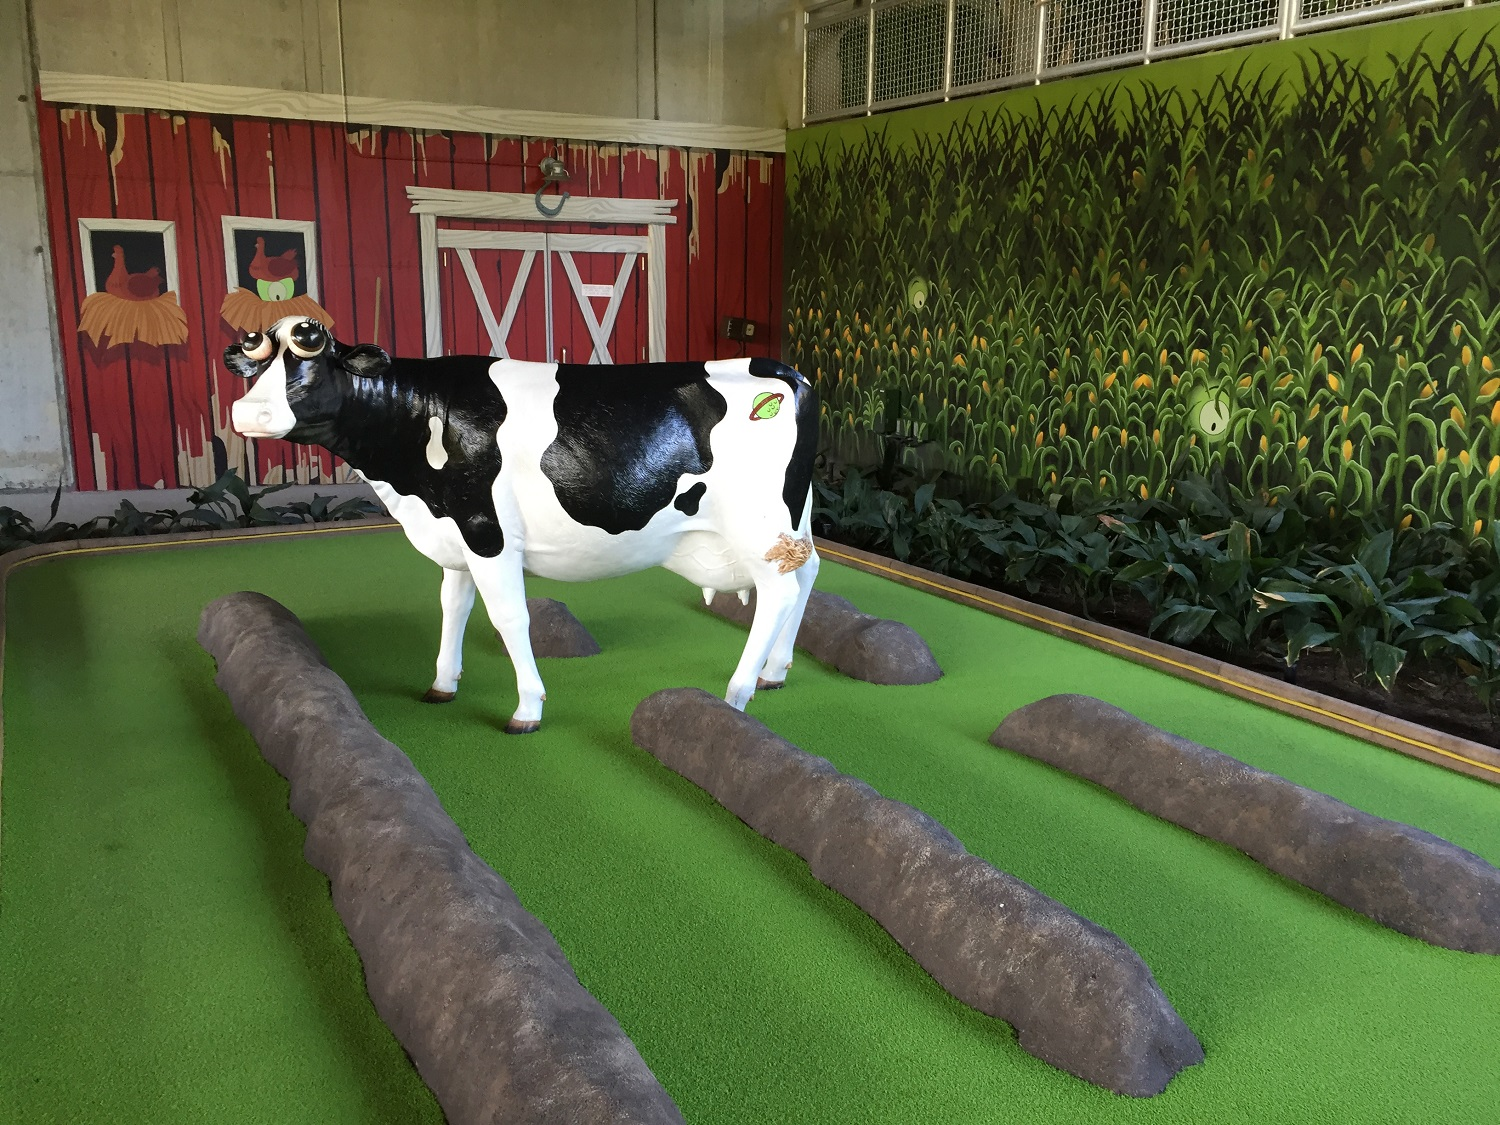 One of the cows in the Invaders from Planet Putt course.